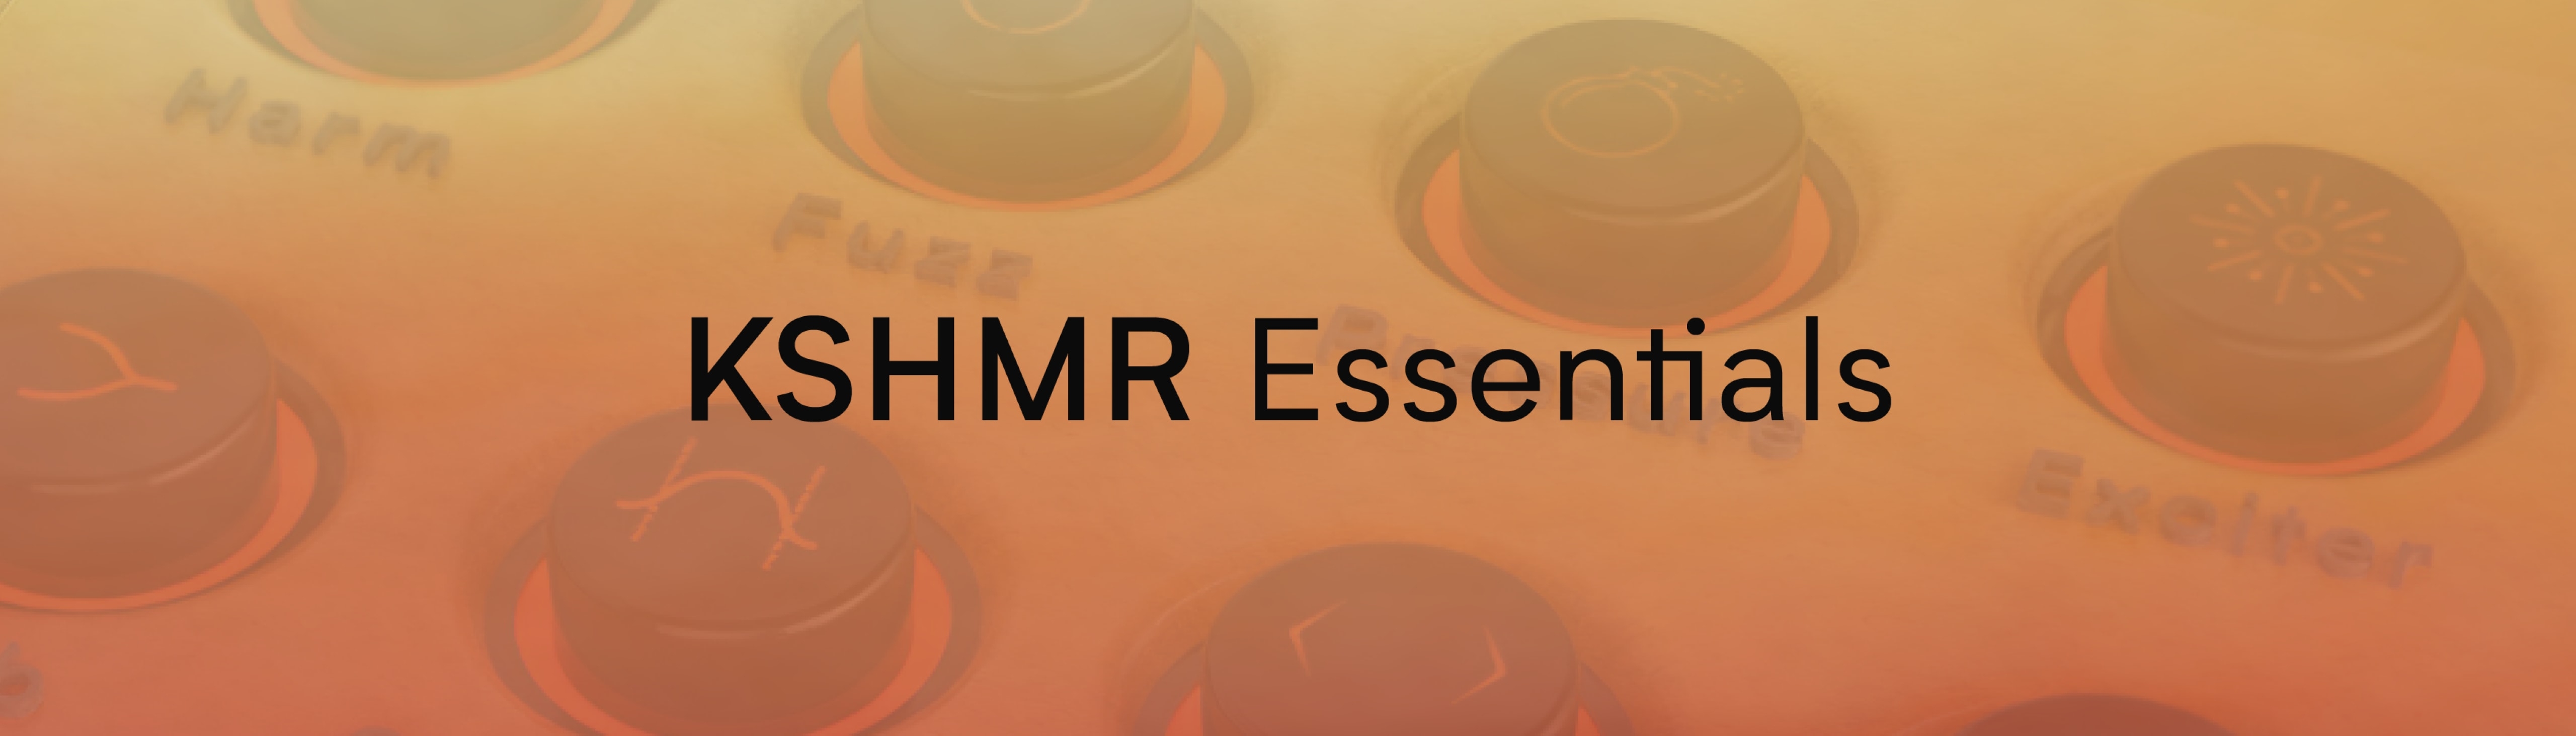 KSHMR Essentials plugin